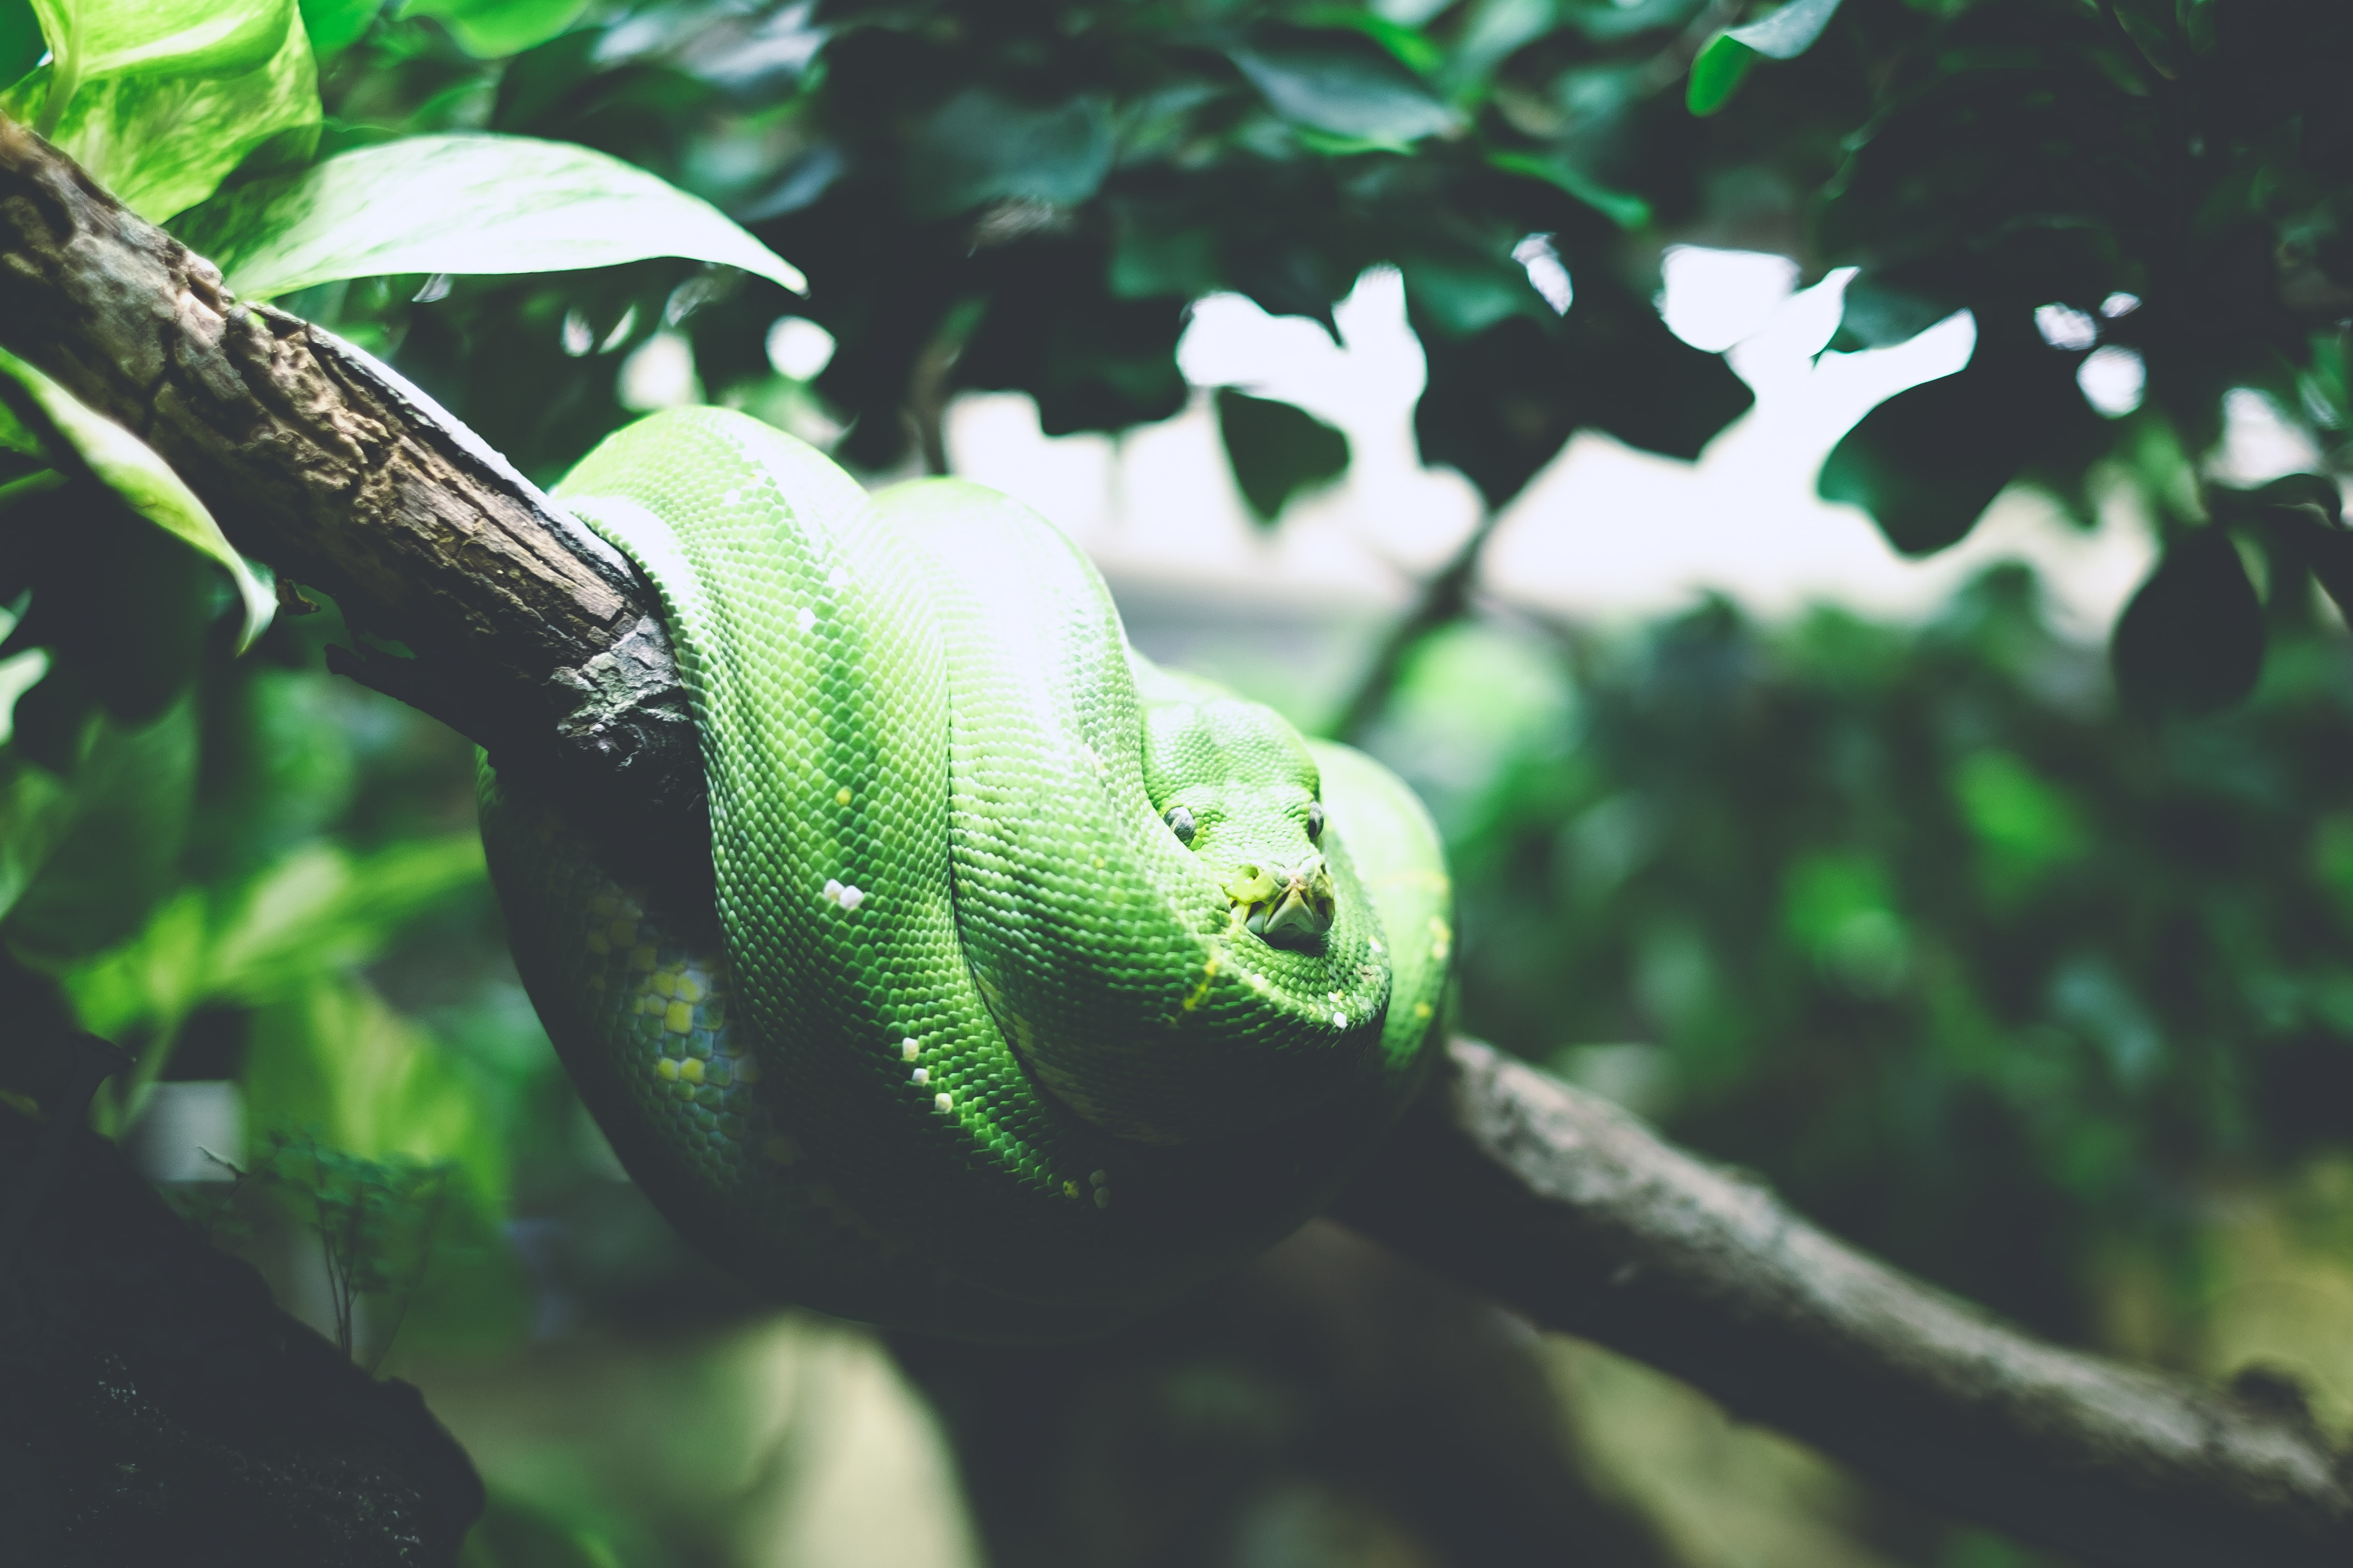 green snake on tree branch